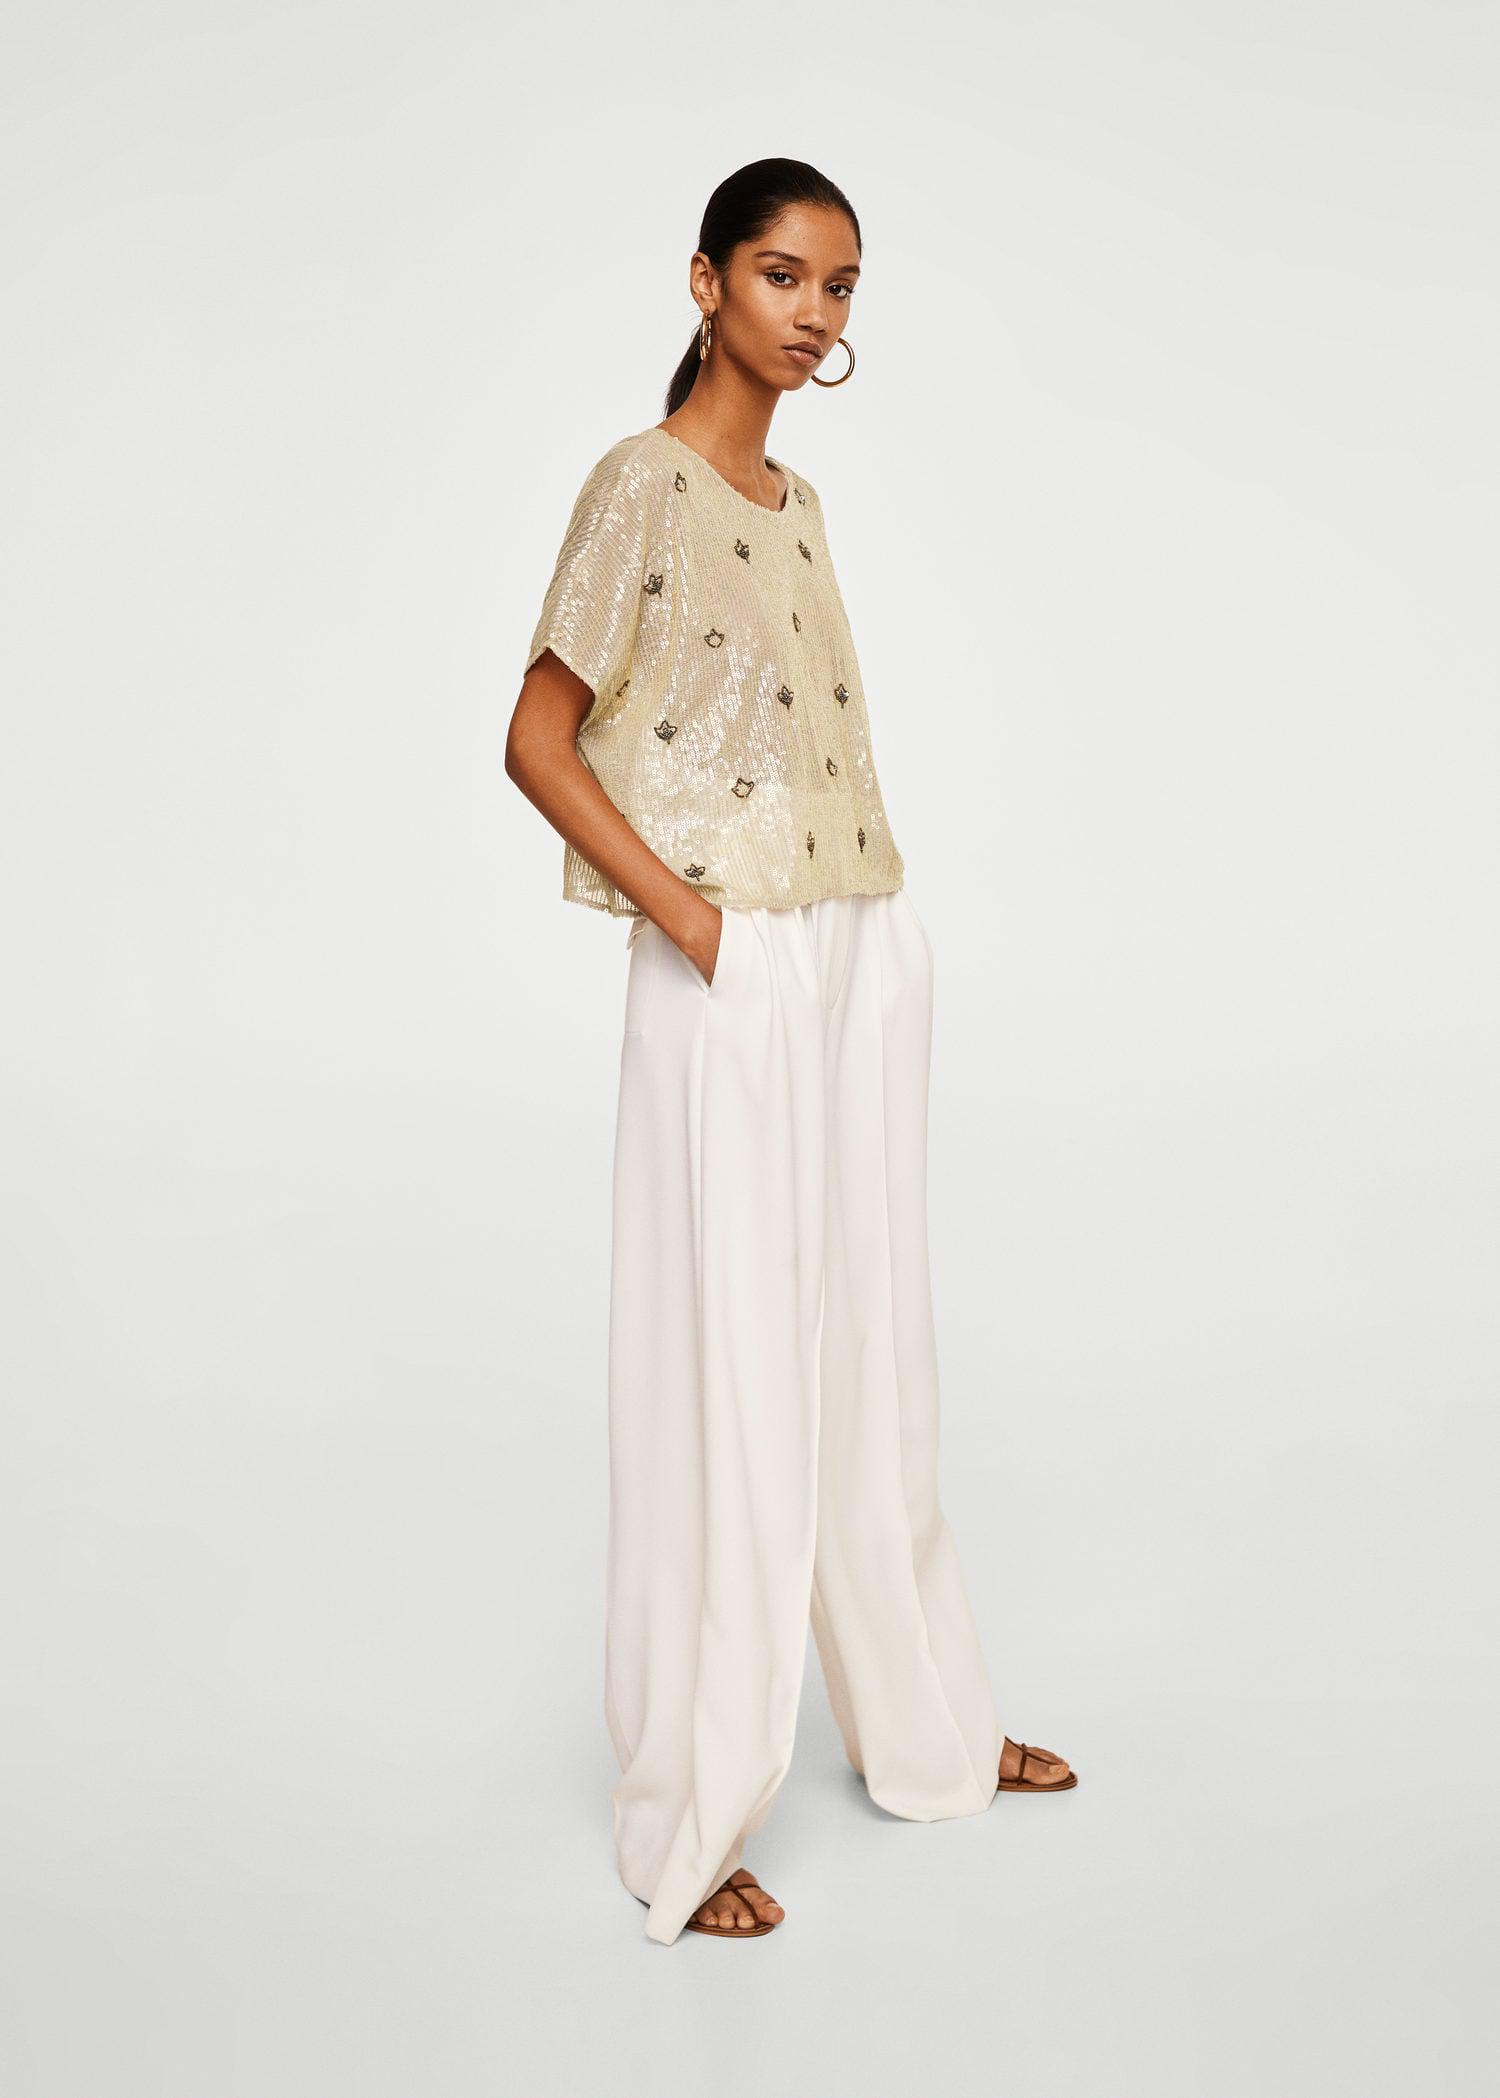 Mango Embroidered Sequins Blouse in Sand (Natural)